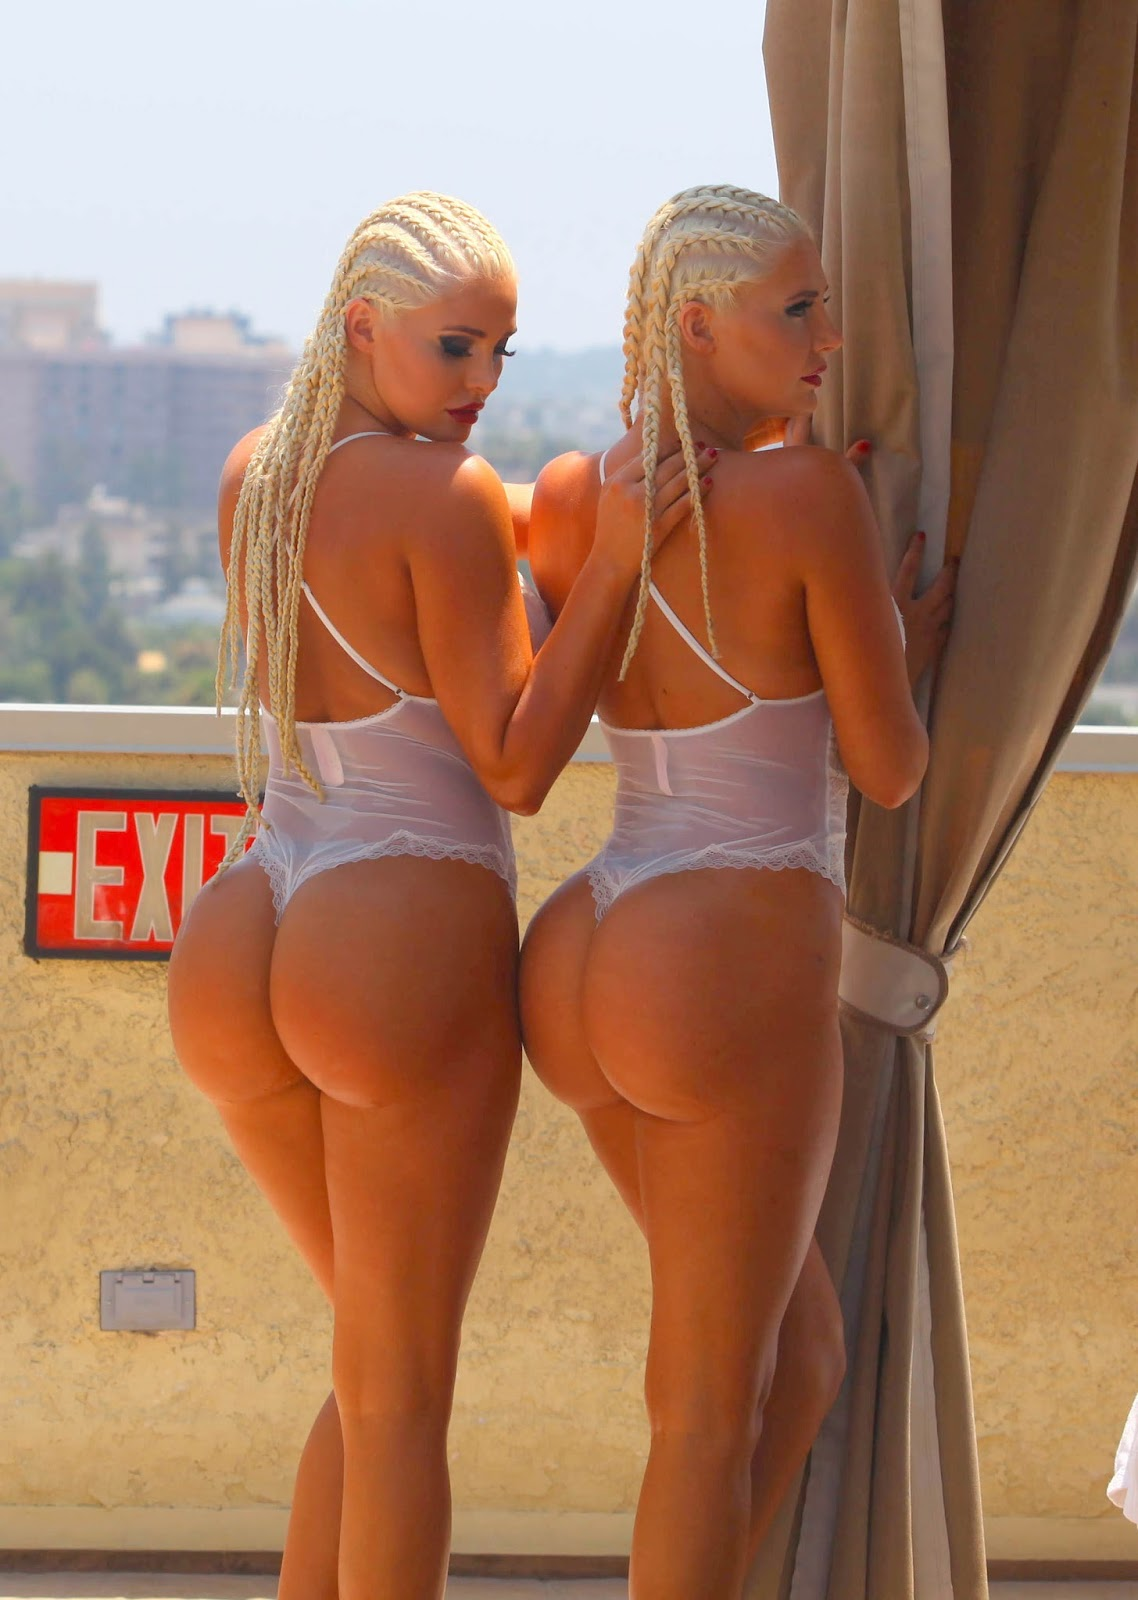 Gifs and Pics Every Day: Whooty Twins